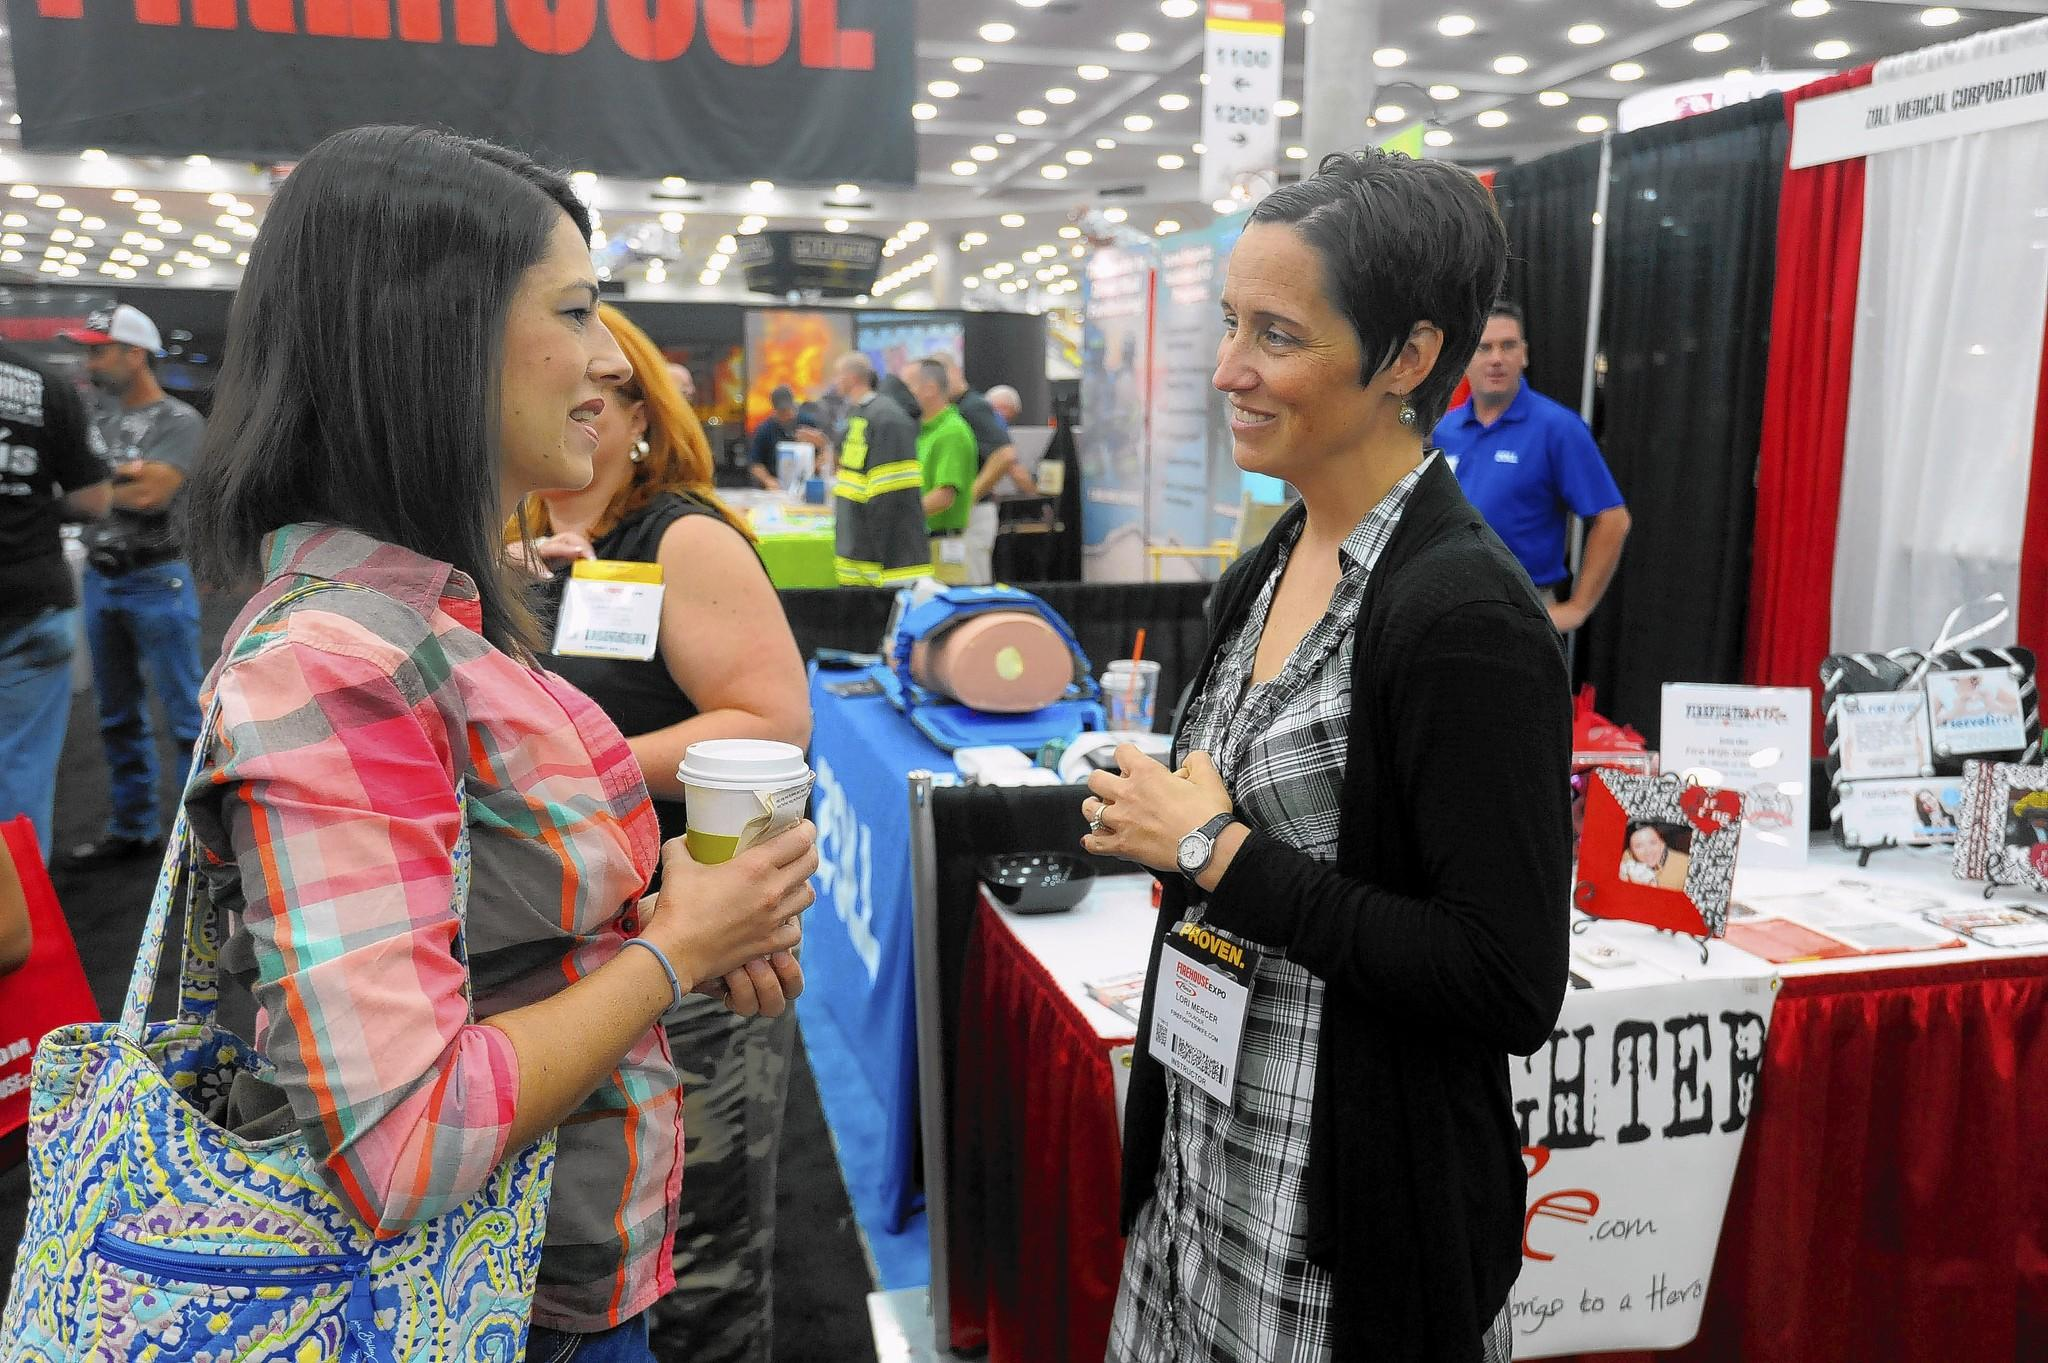 Left to right, Becky Fleitz, of Roanoke, Va., speaks with Lori Mercer, founder of Firefighterwife.com, an online community for the wives, fiancees and girlfriends of firefighters, at the Firehouse Expo in the Baltimore Convention Center.